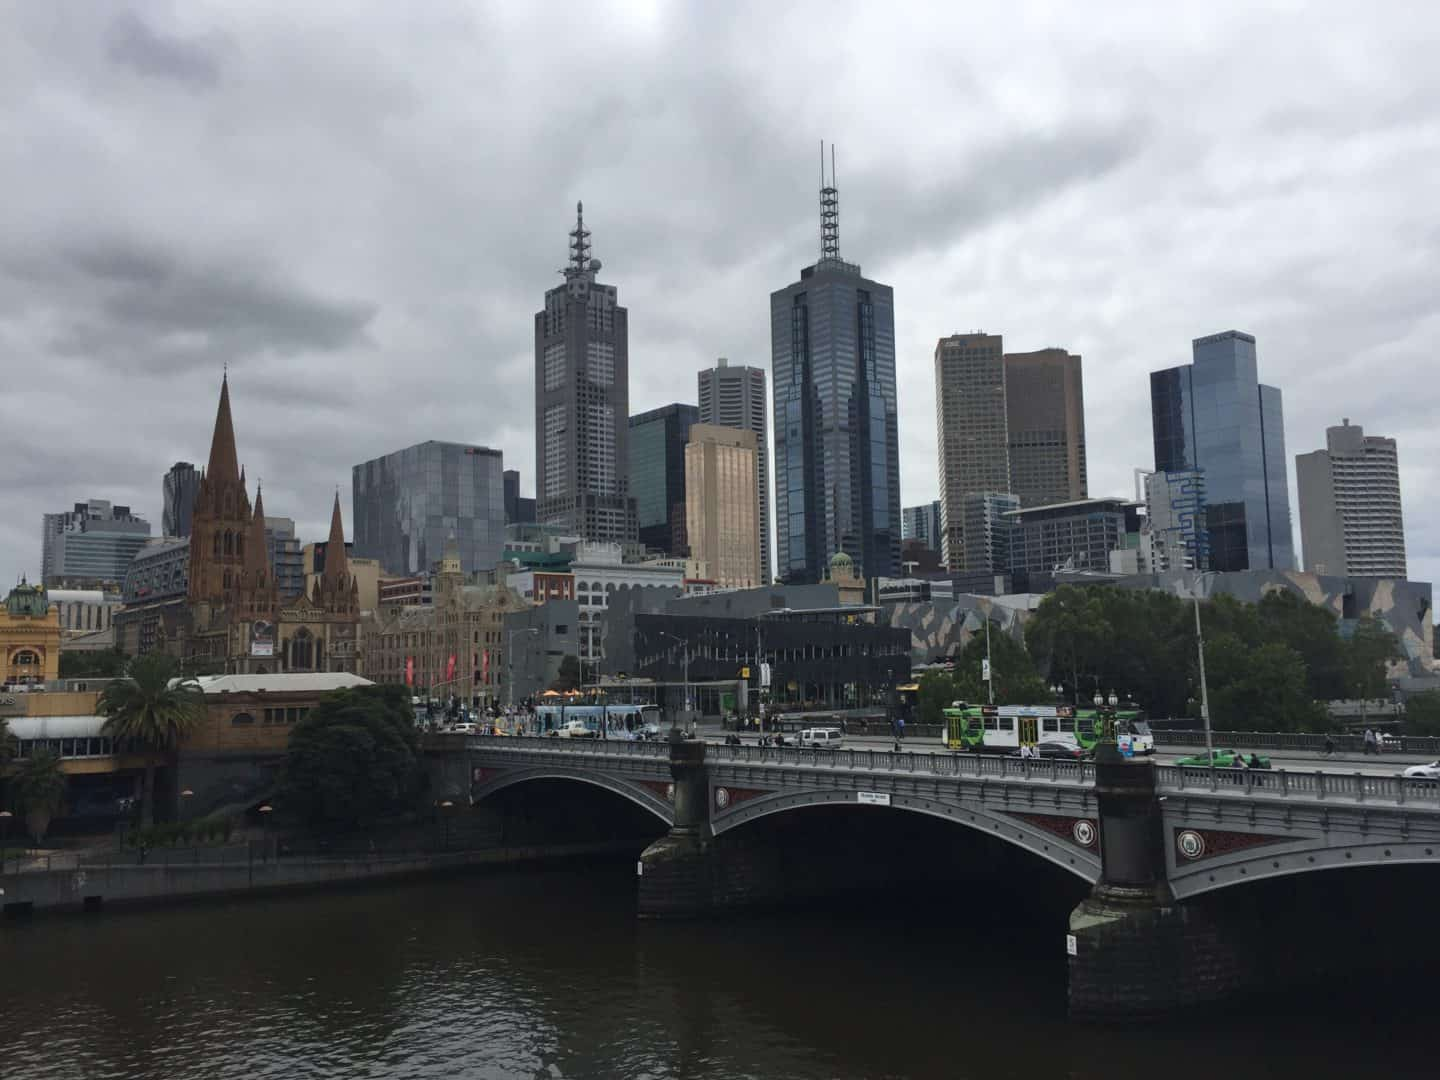 What I learnt on the free Melbourne walking tour